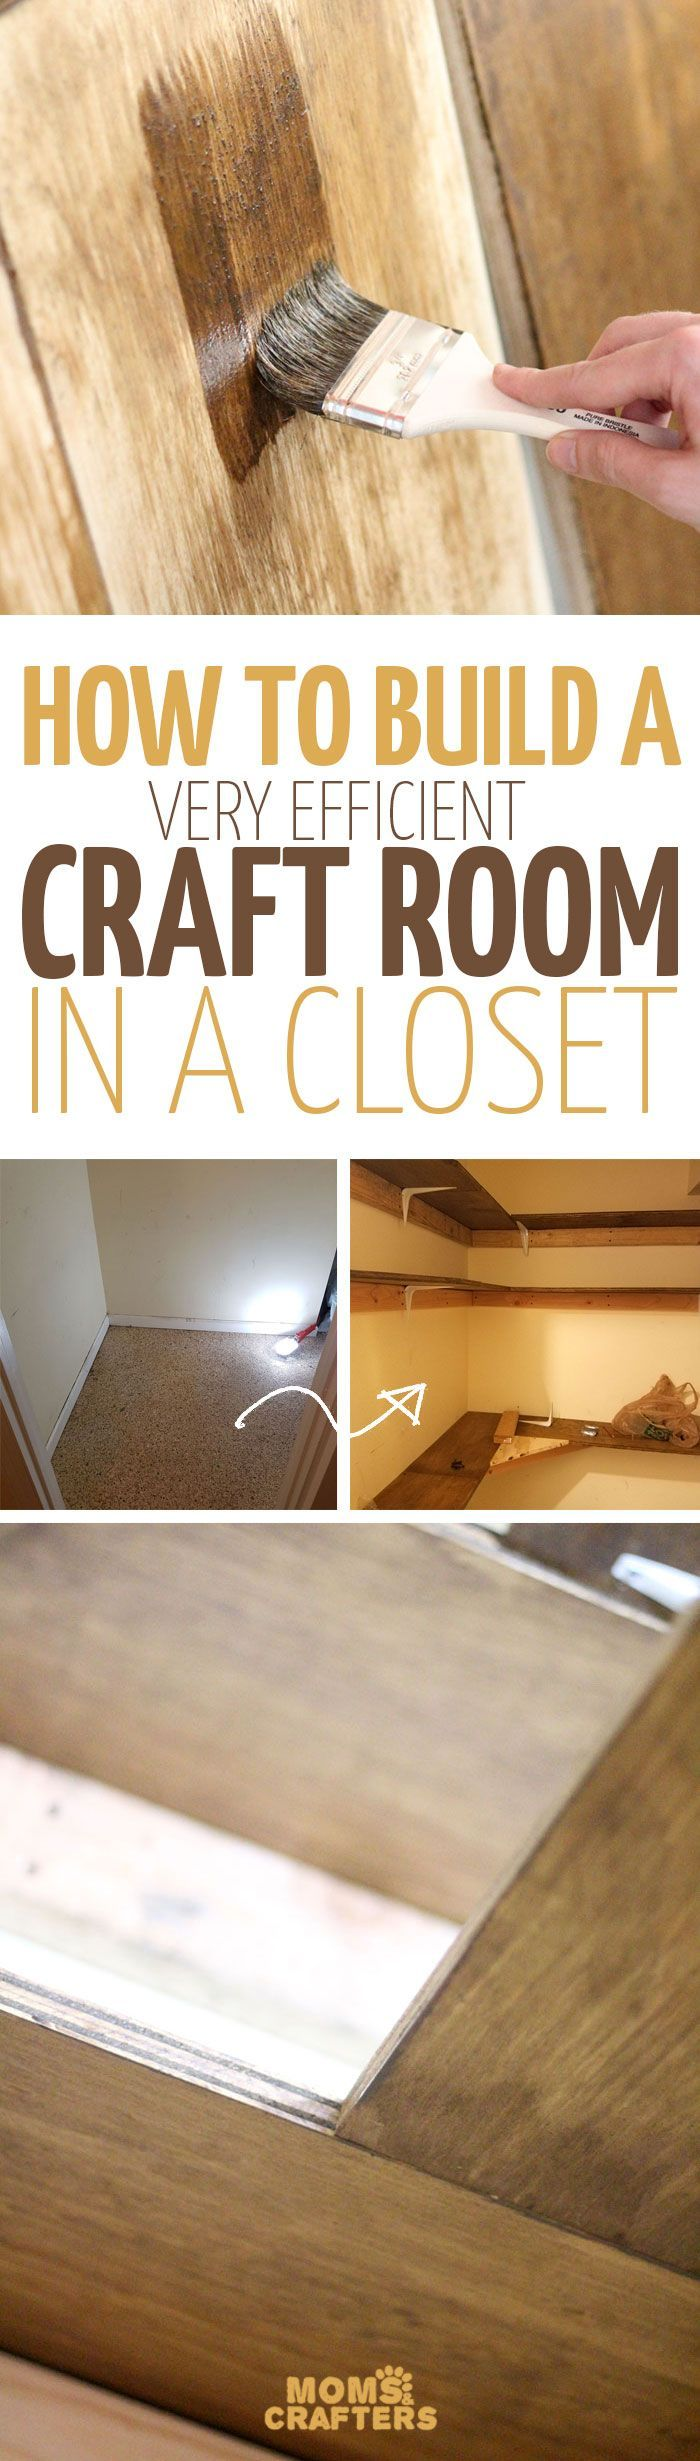 Have you ever considered builting a craft room in a closet? It's not as hard as you think! With the right plan, you can make a very functional craft area in a tiny space. It's a DIY home project you don't want to miss!